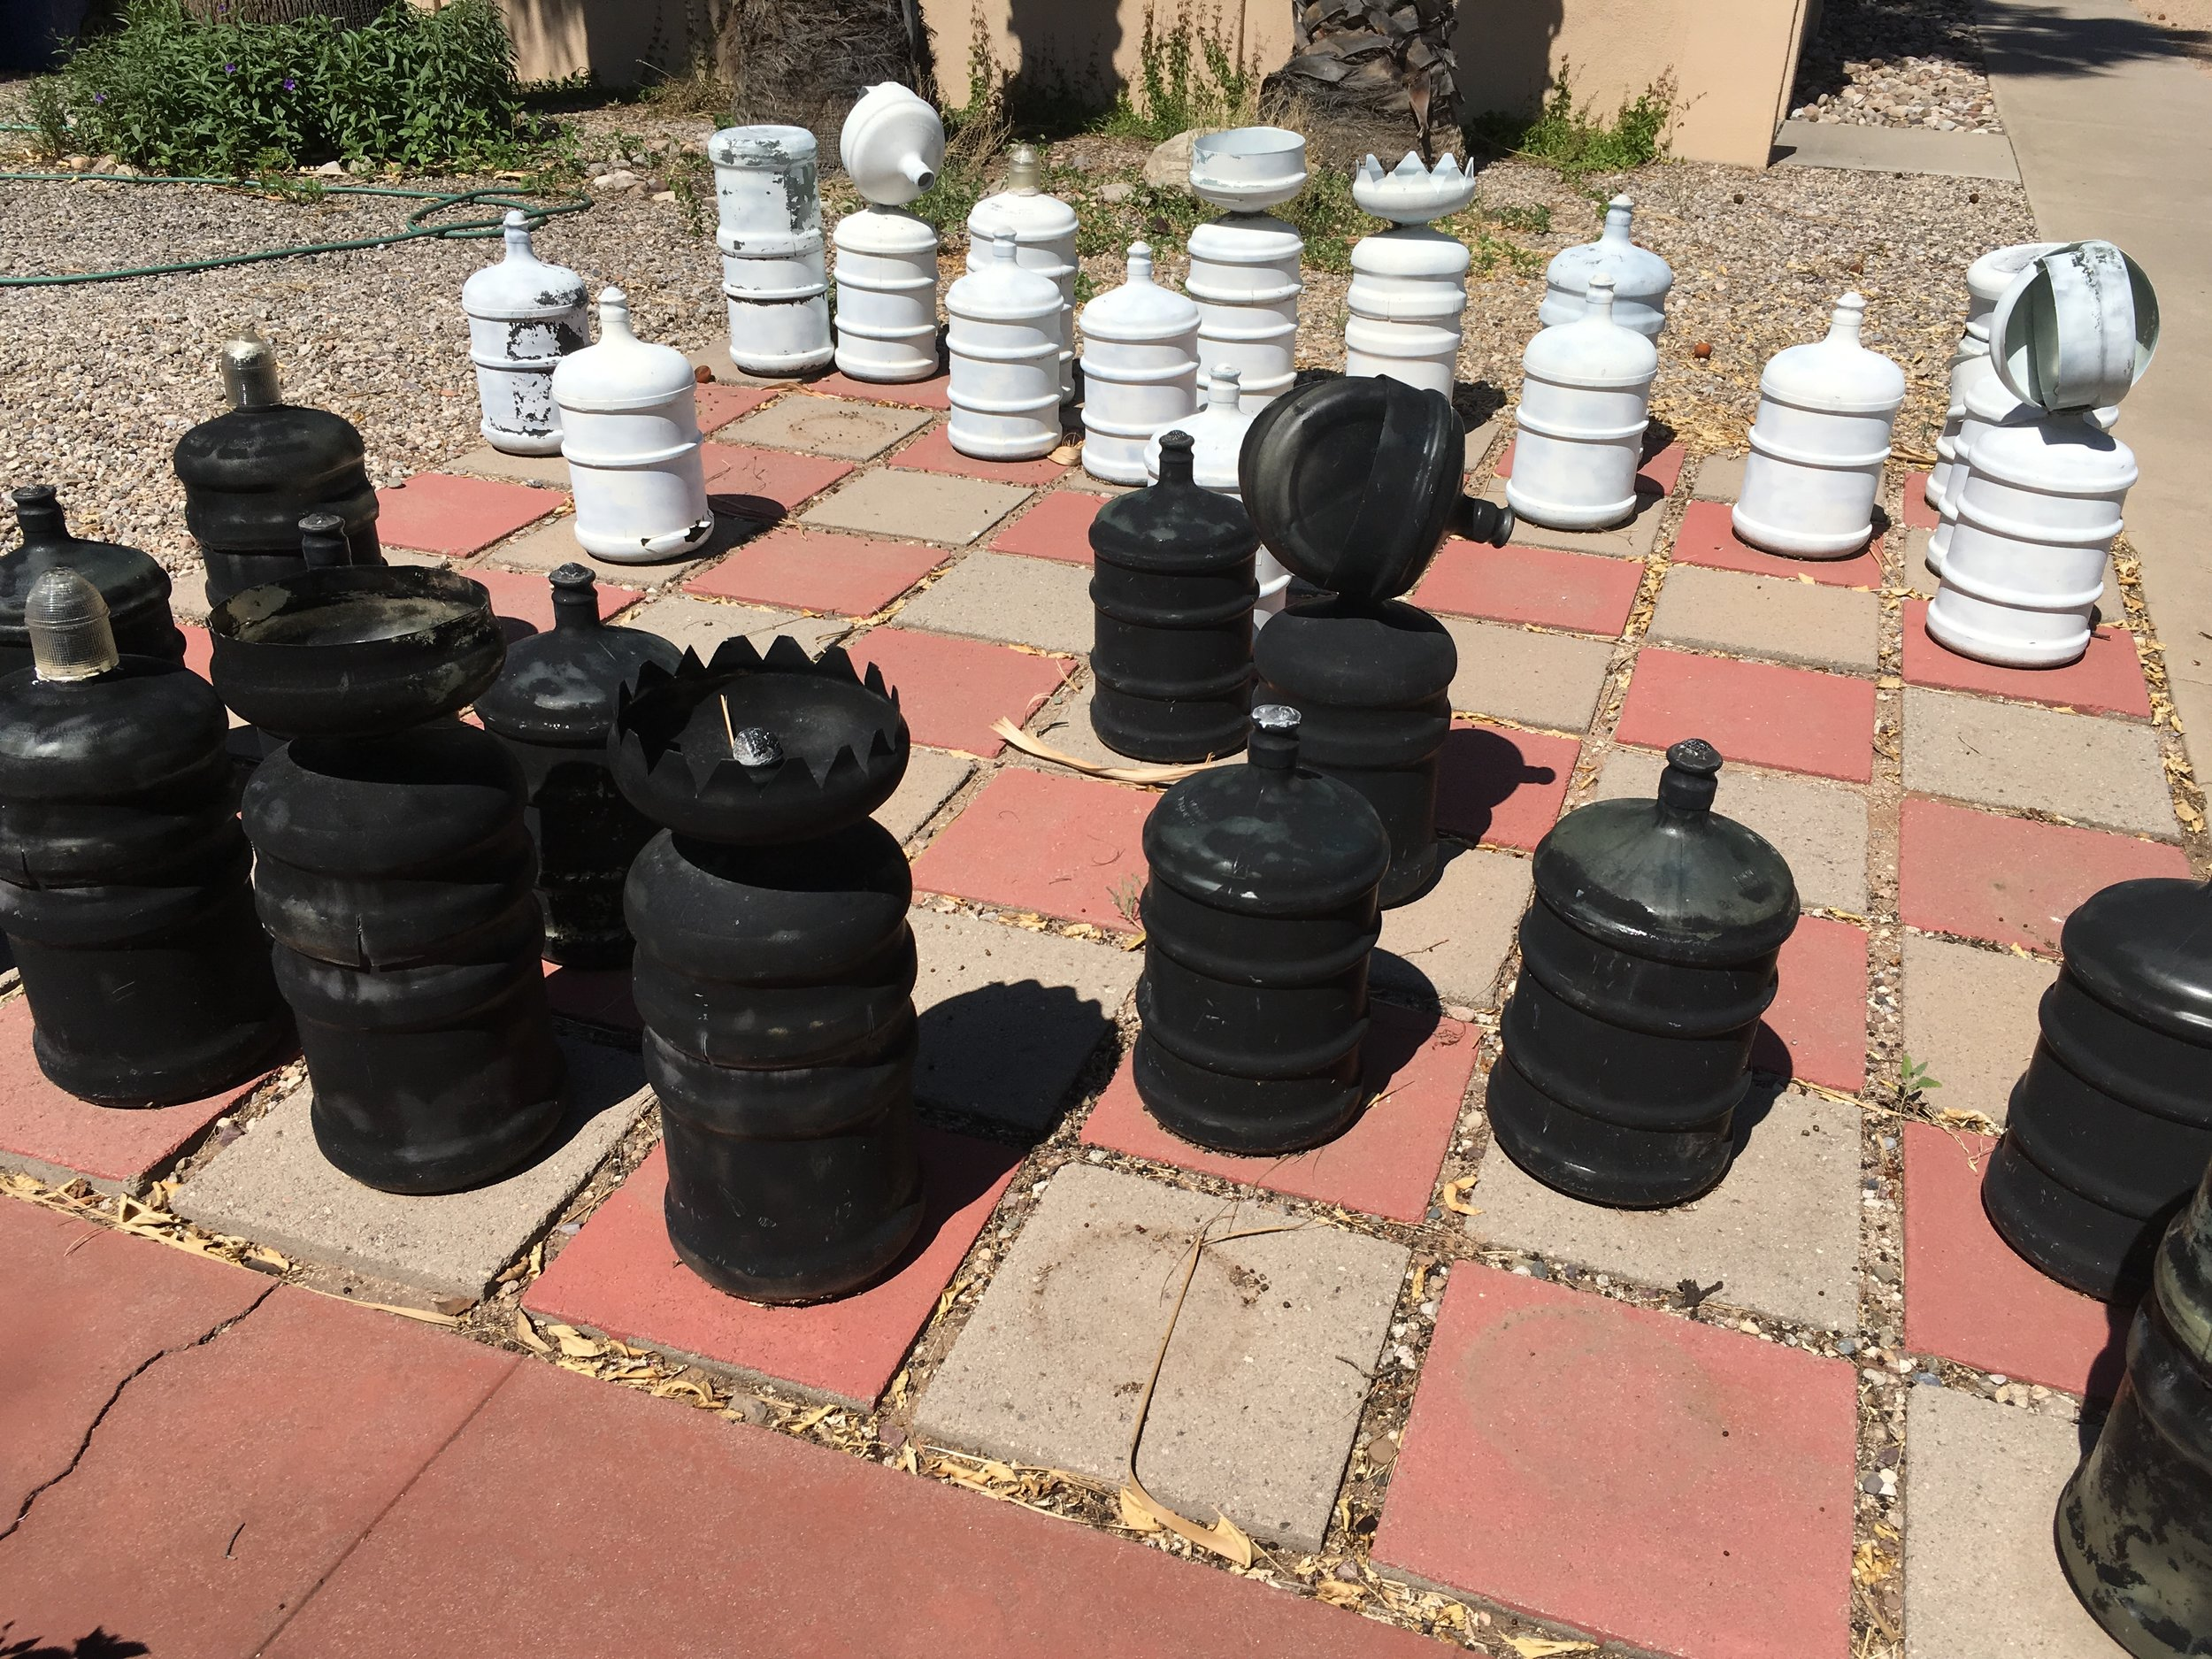 These old water jugs have taken a beating from the desert sun, but they were a fun idea. Sam Hughes neighborhood.